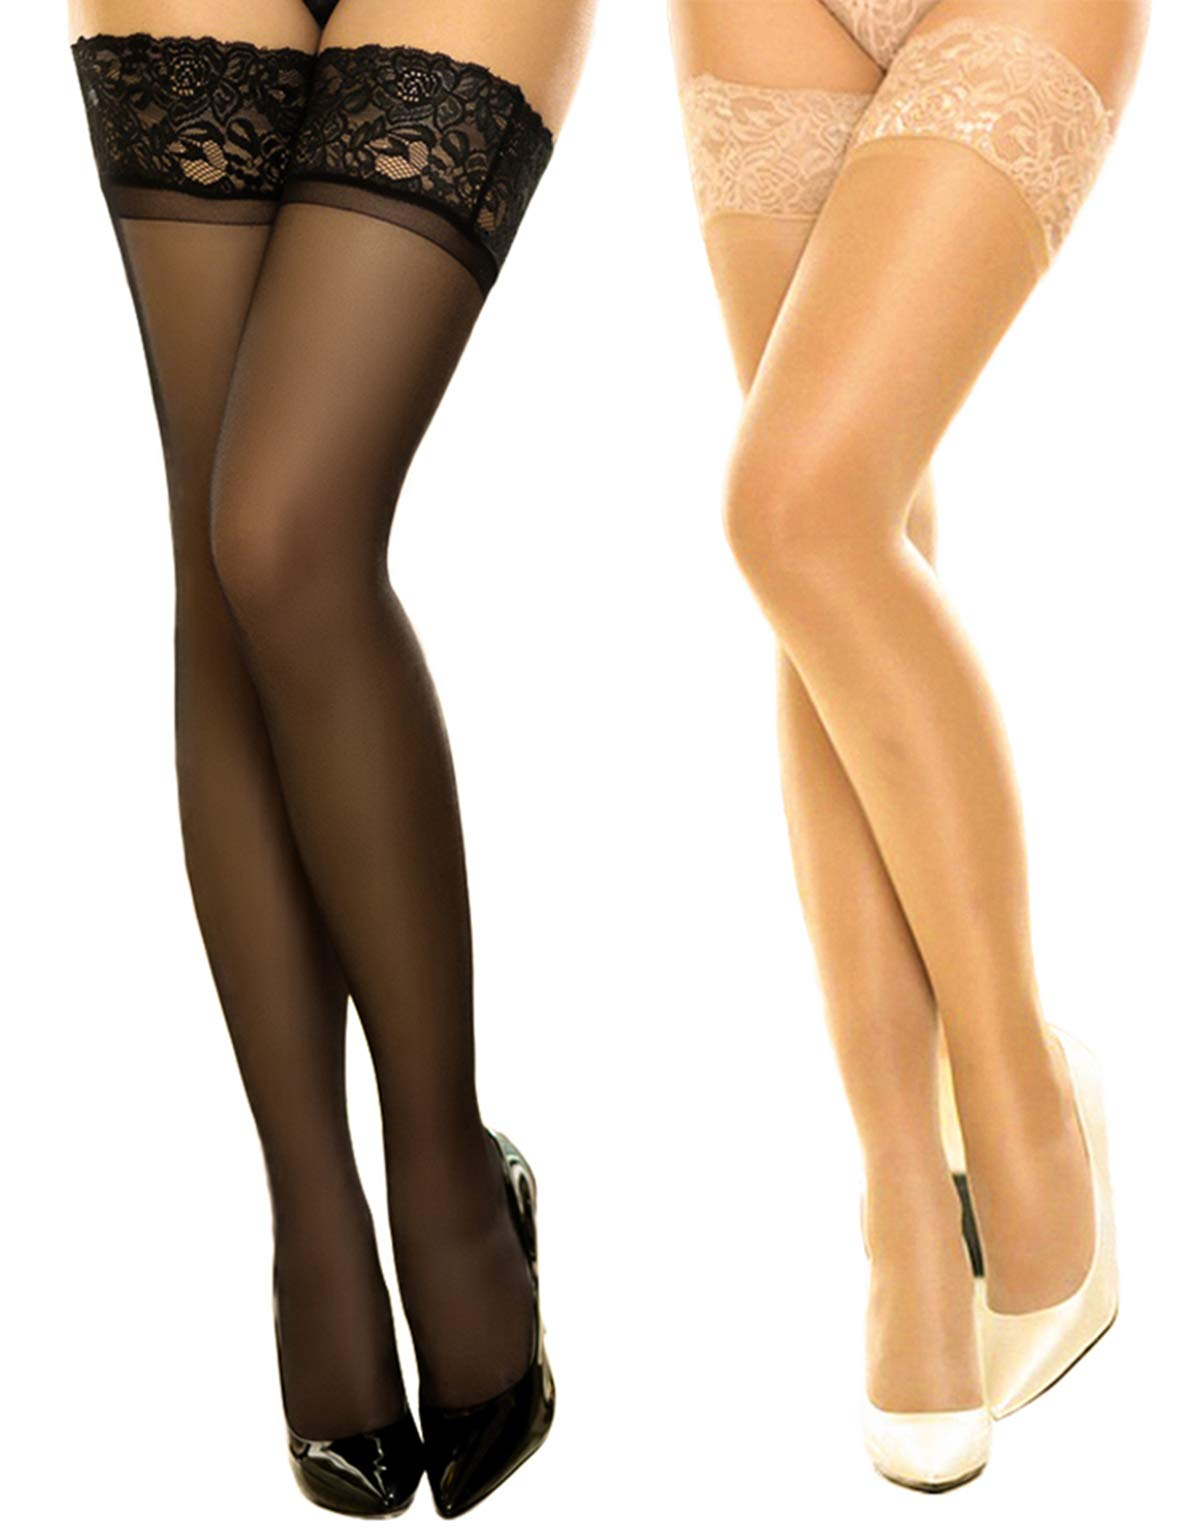 2 Pair Women's Thigh High Stockings Lace Sheer Silky Tights Silicone Stay Up Nylon Pantyhose for DancMolly